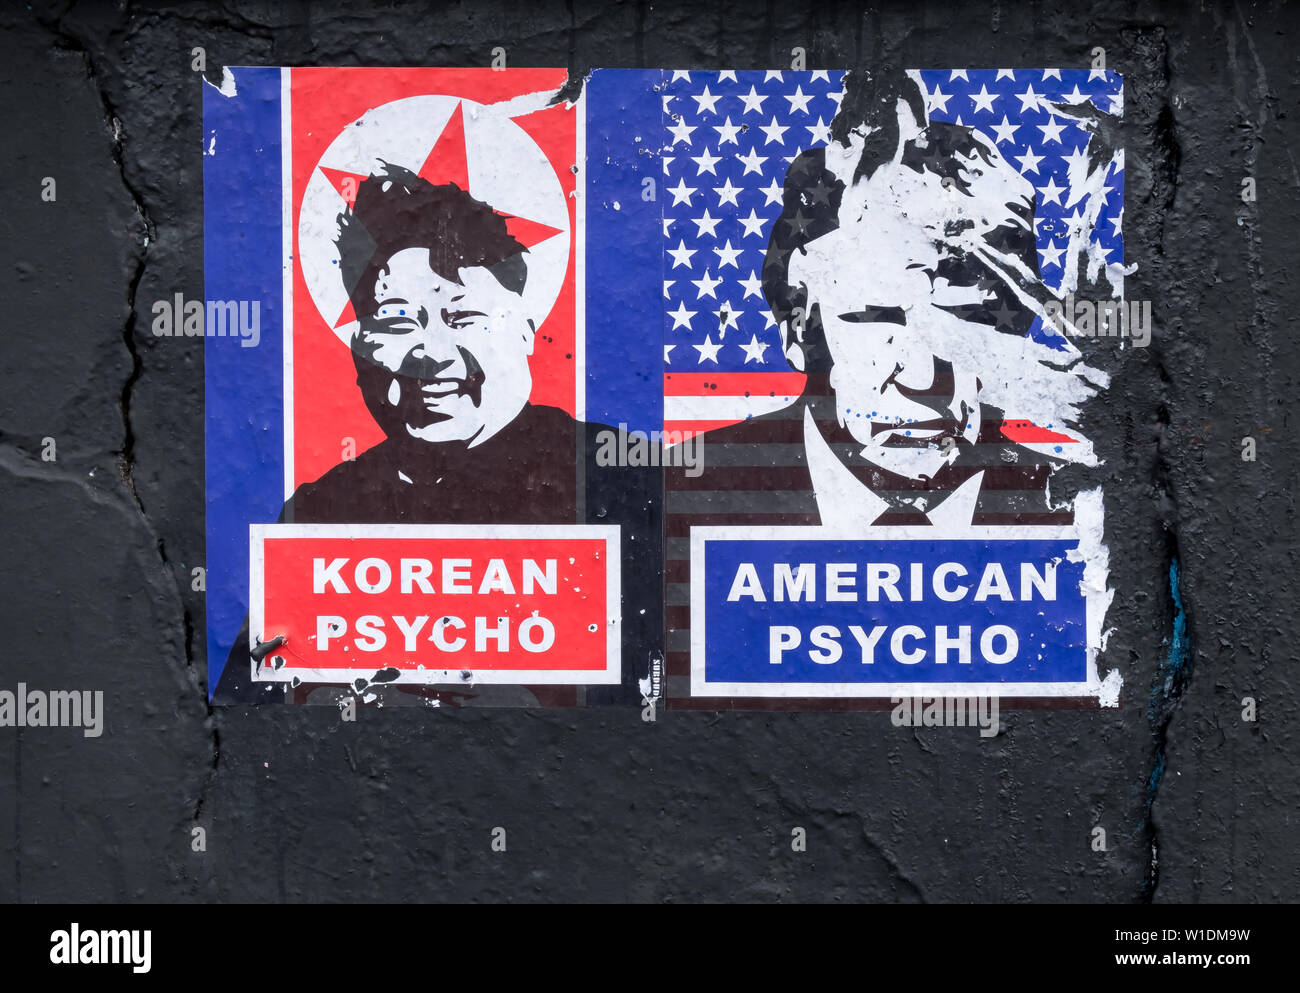 "Political poster on black surface depicting leaders of North Korea and United States of America under title ""Psycho"".  Attempt made to remove. Stock Photo"